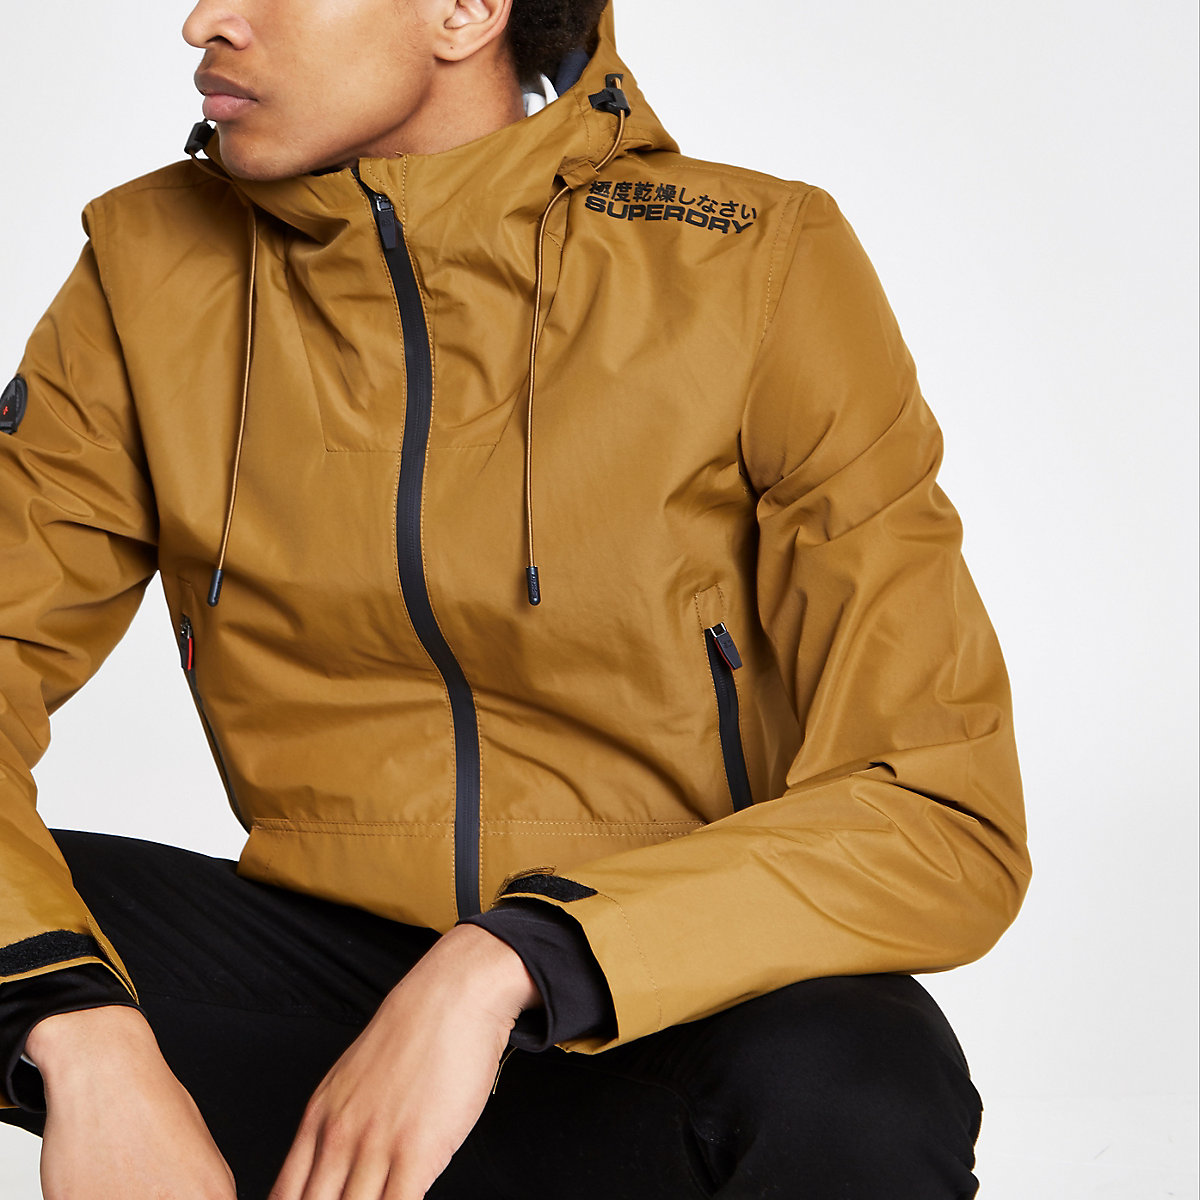 Superdry yellow lightweight hooded jacket